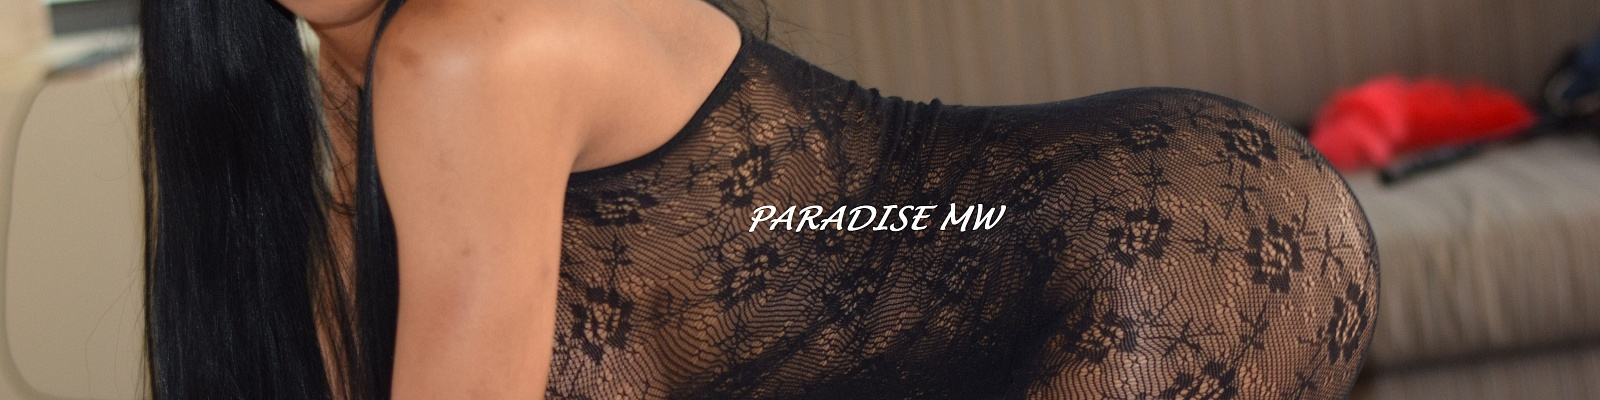 Paradise MW's Cover Photo